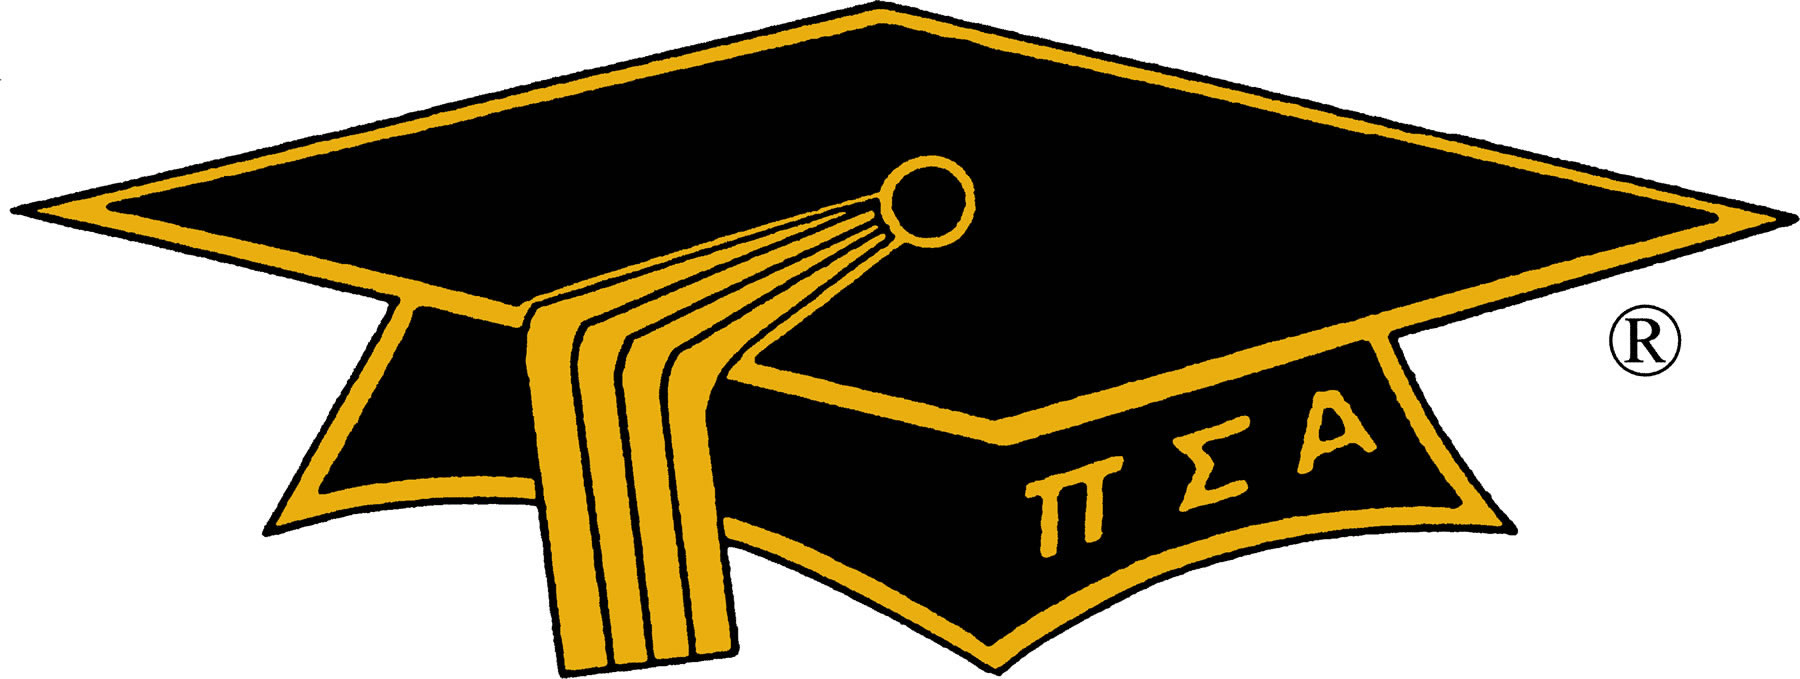 Mortar Board Logo